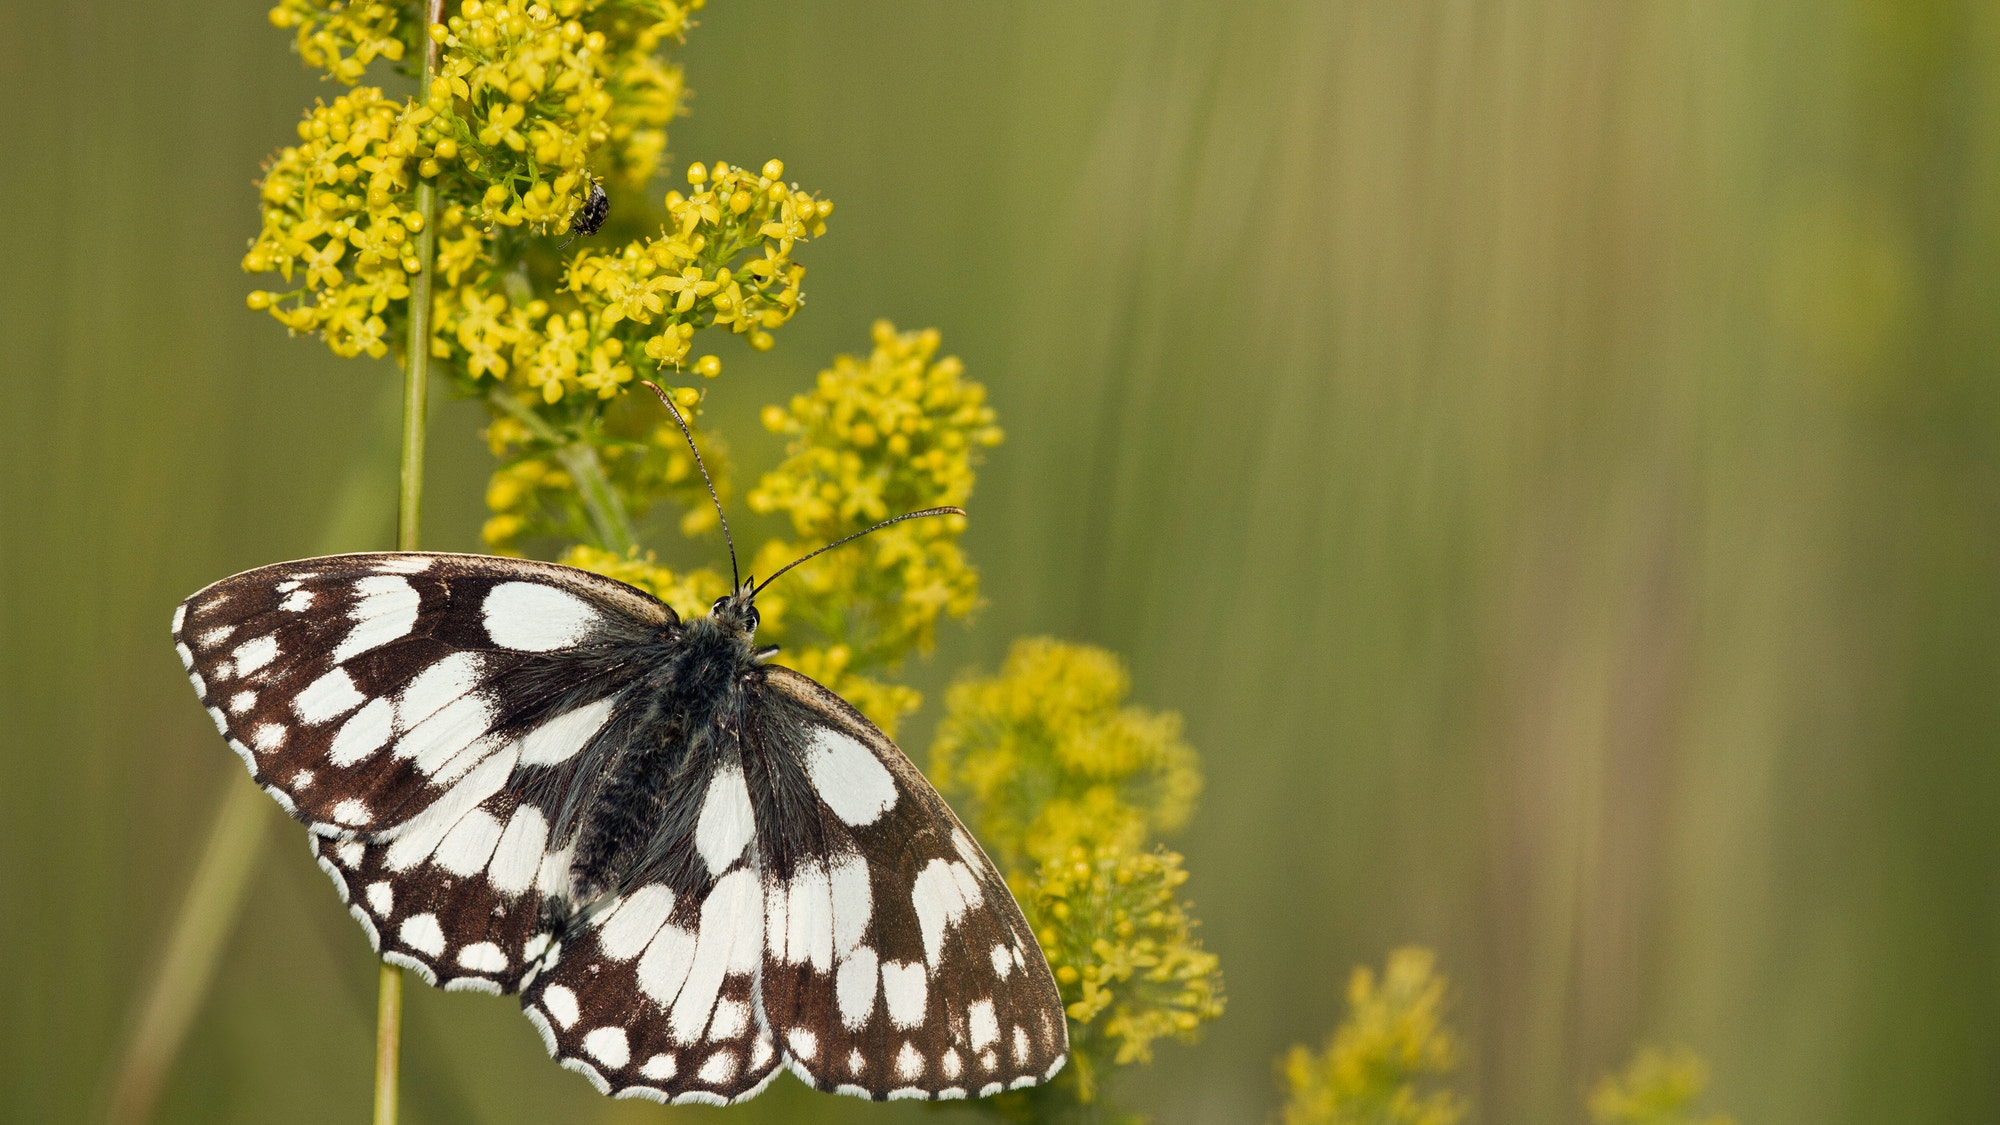 Butterfly mrblwhite SBP GED